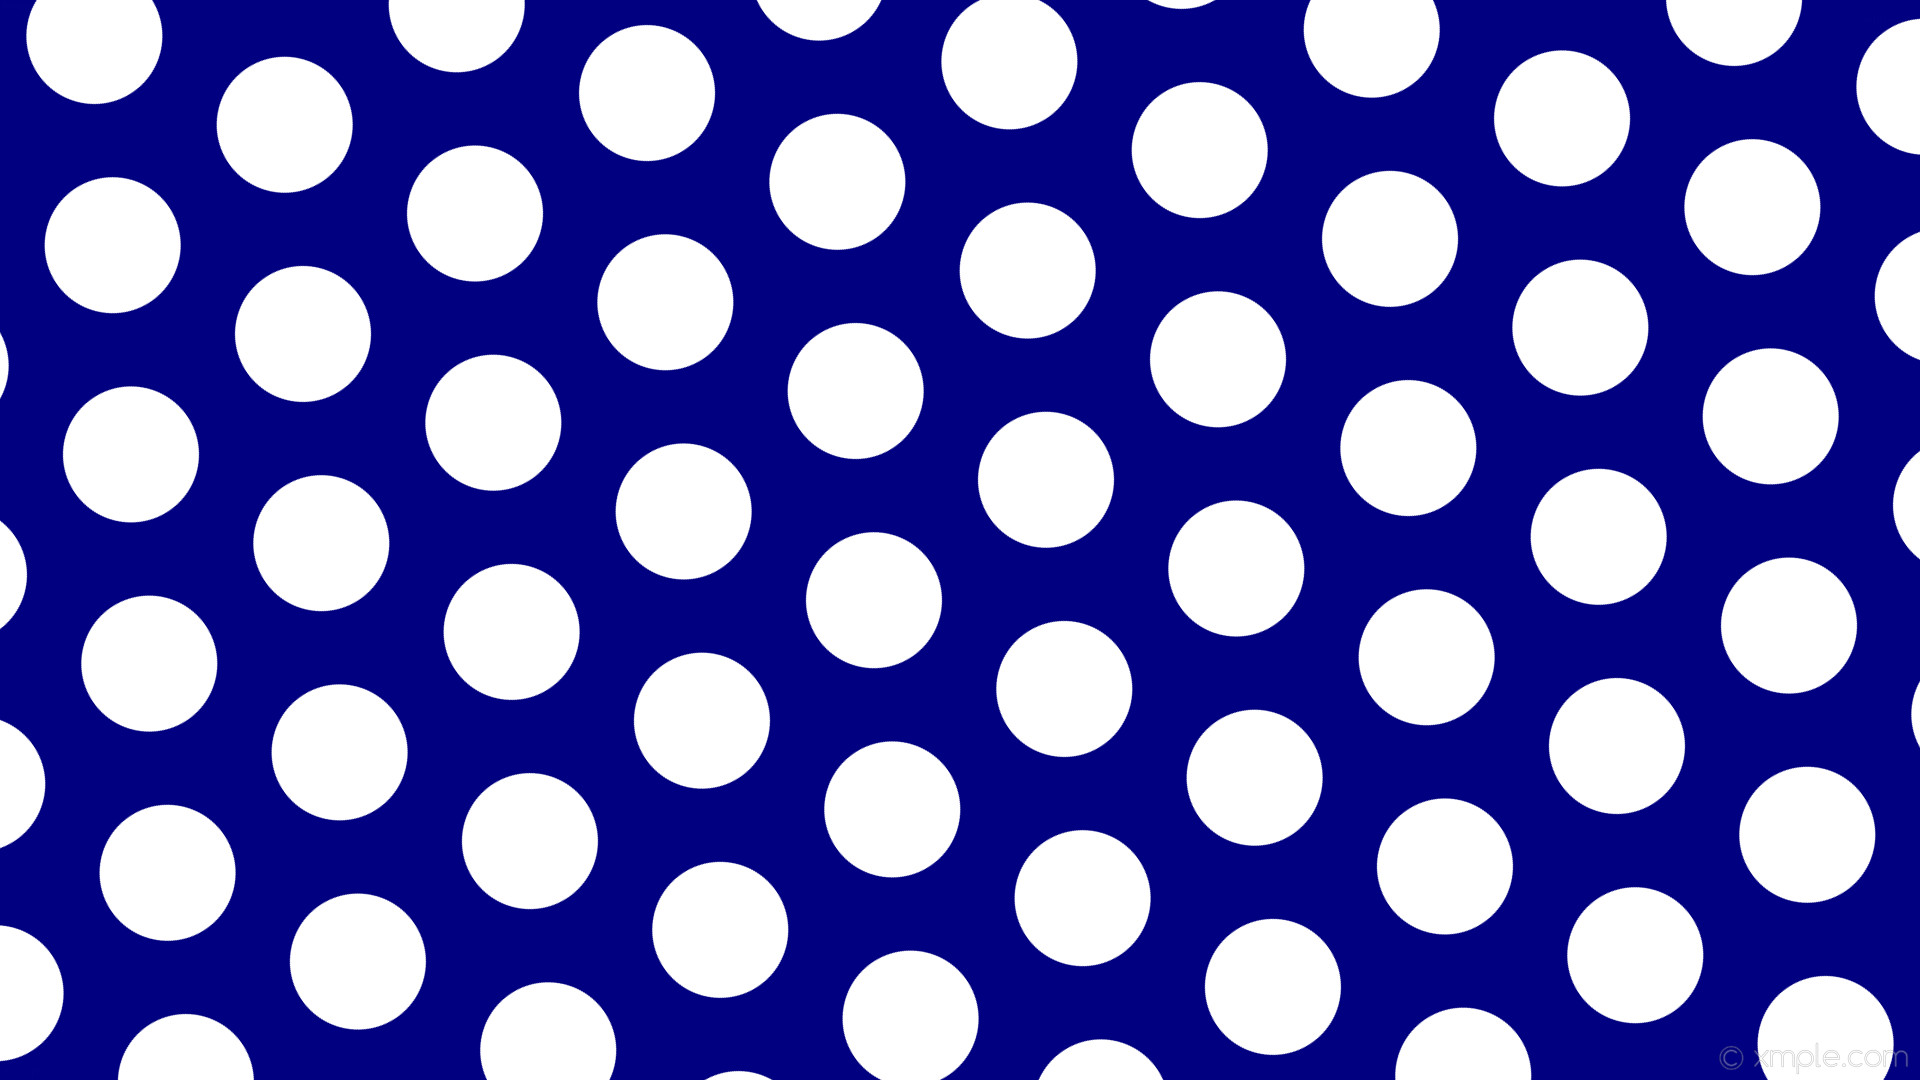 wallpaper hexagon blue white polka dots navy #000080 #ffffff diagonal 35°  136px 210px